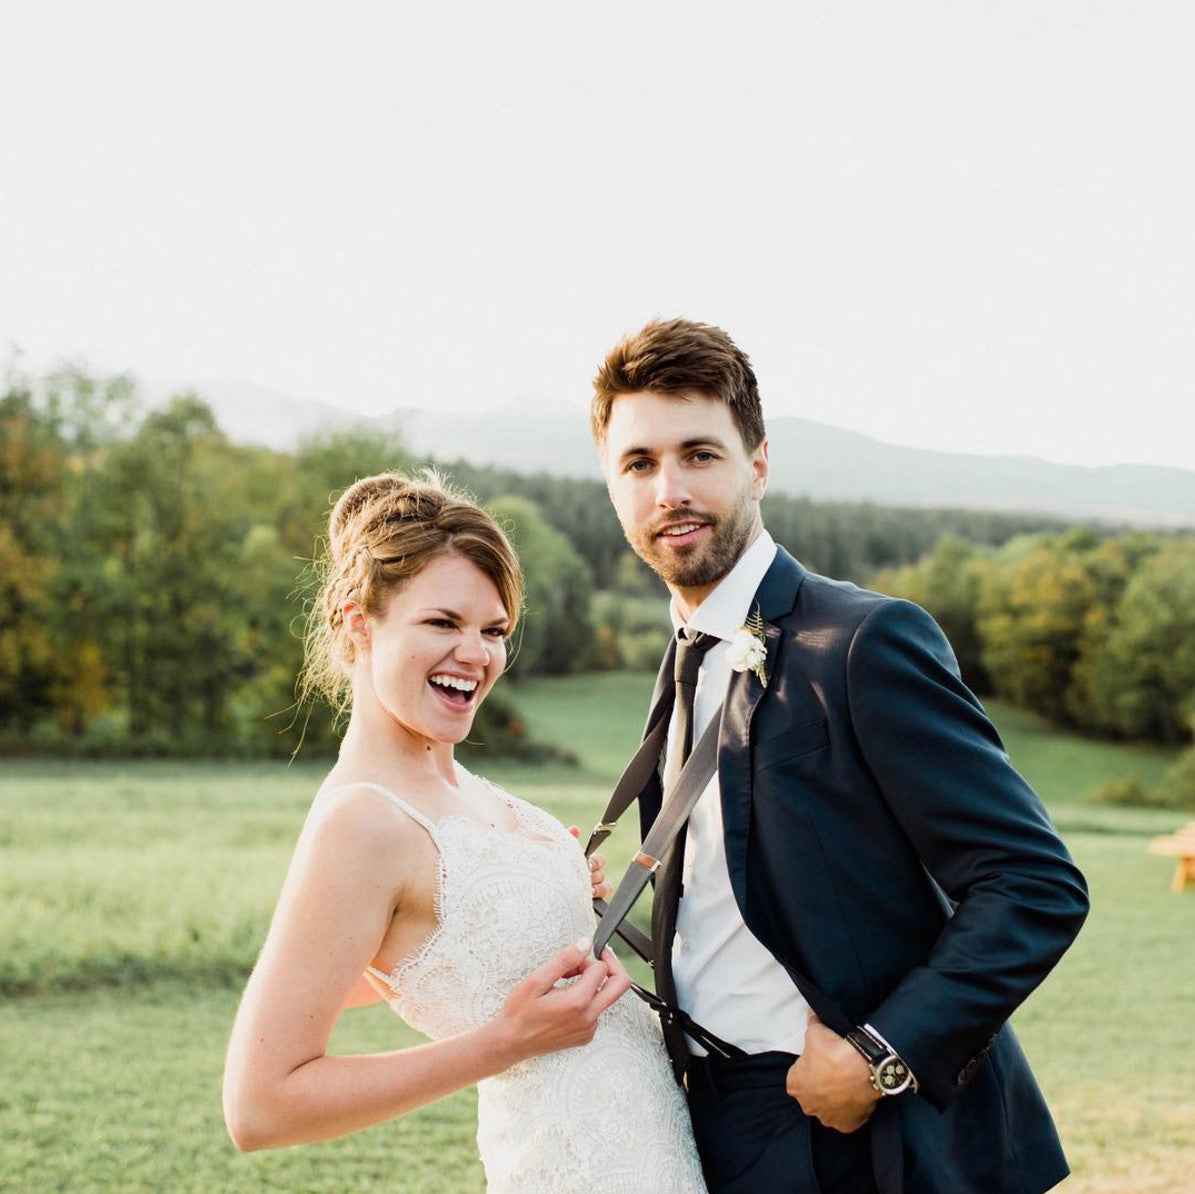 Add Suspenders To Your Wedding Style! – The Groomsman Suit